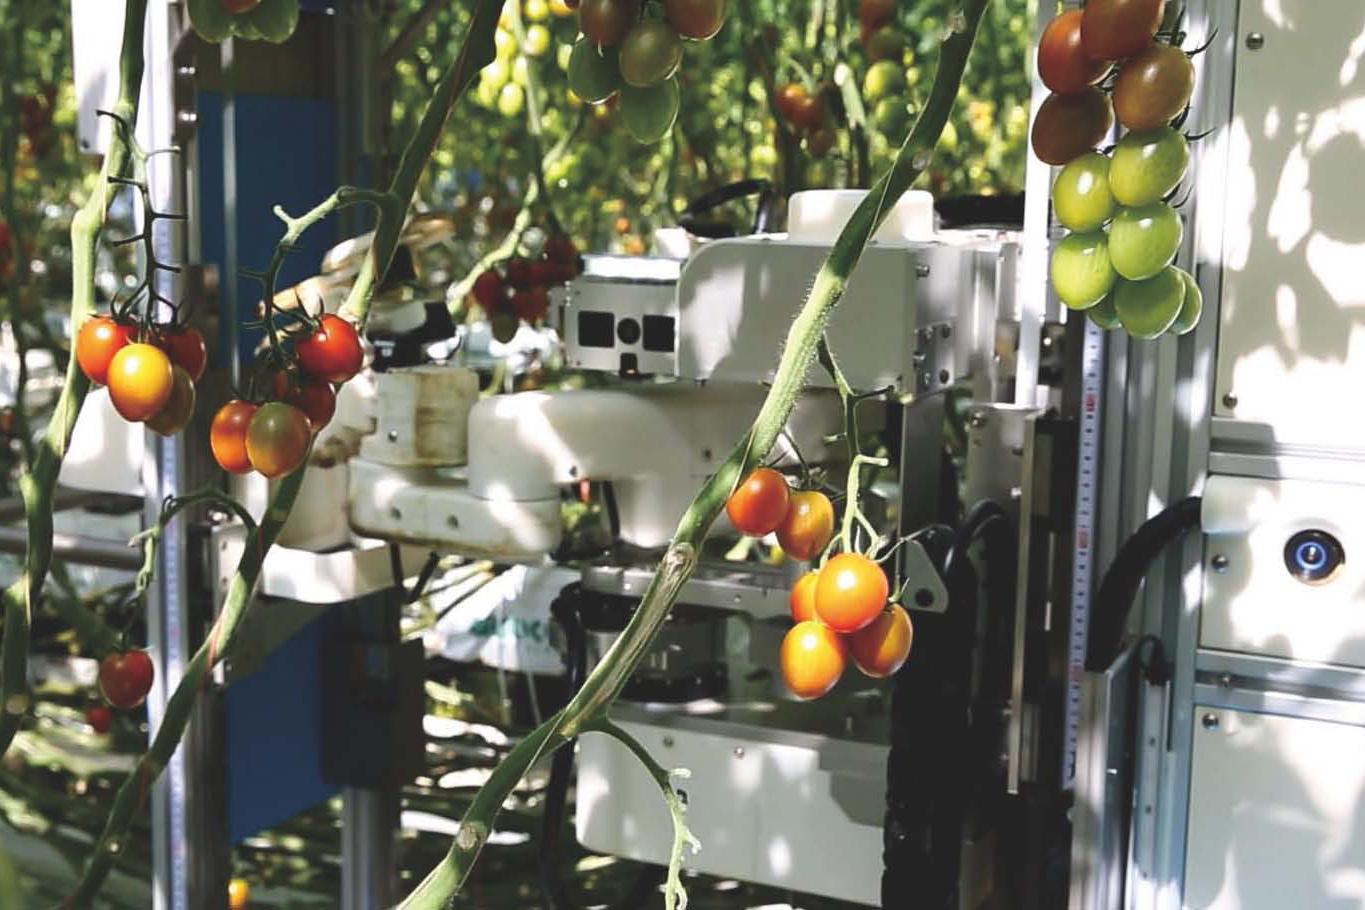 photo: Panasonic's tomato harvesting robot working at an advanced farm